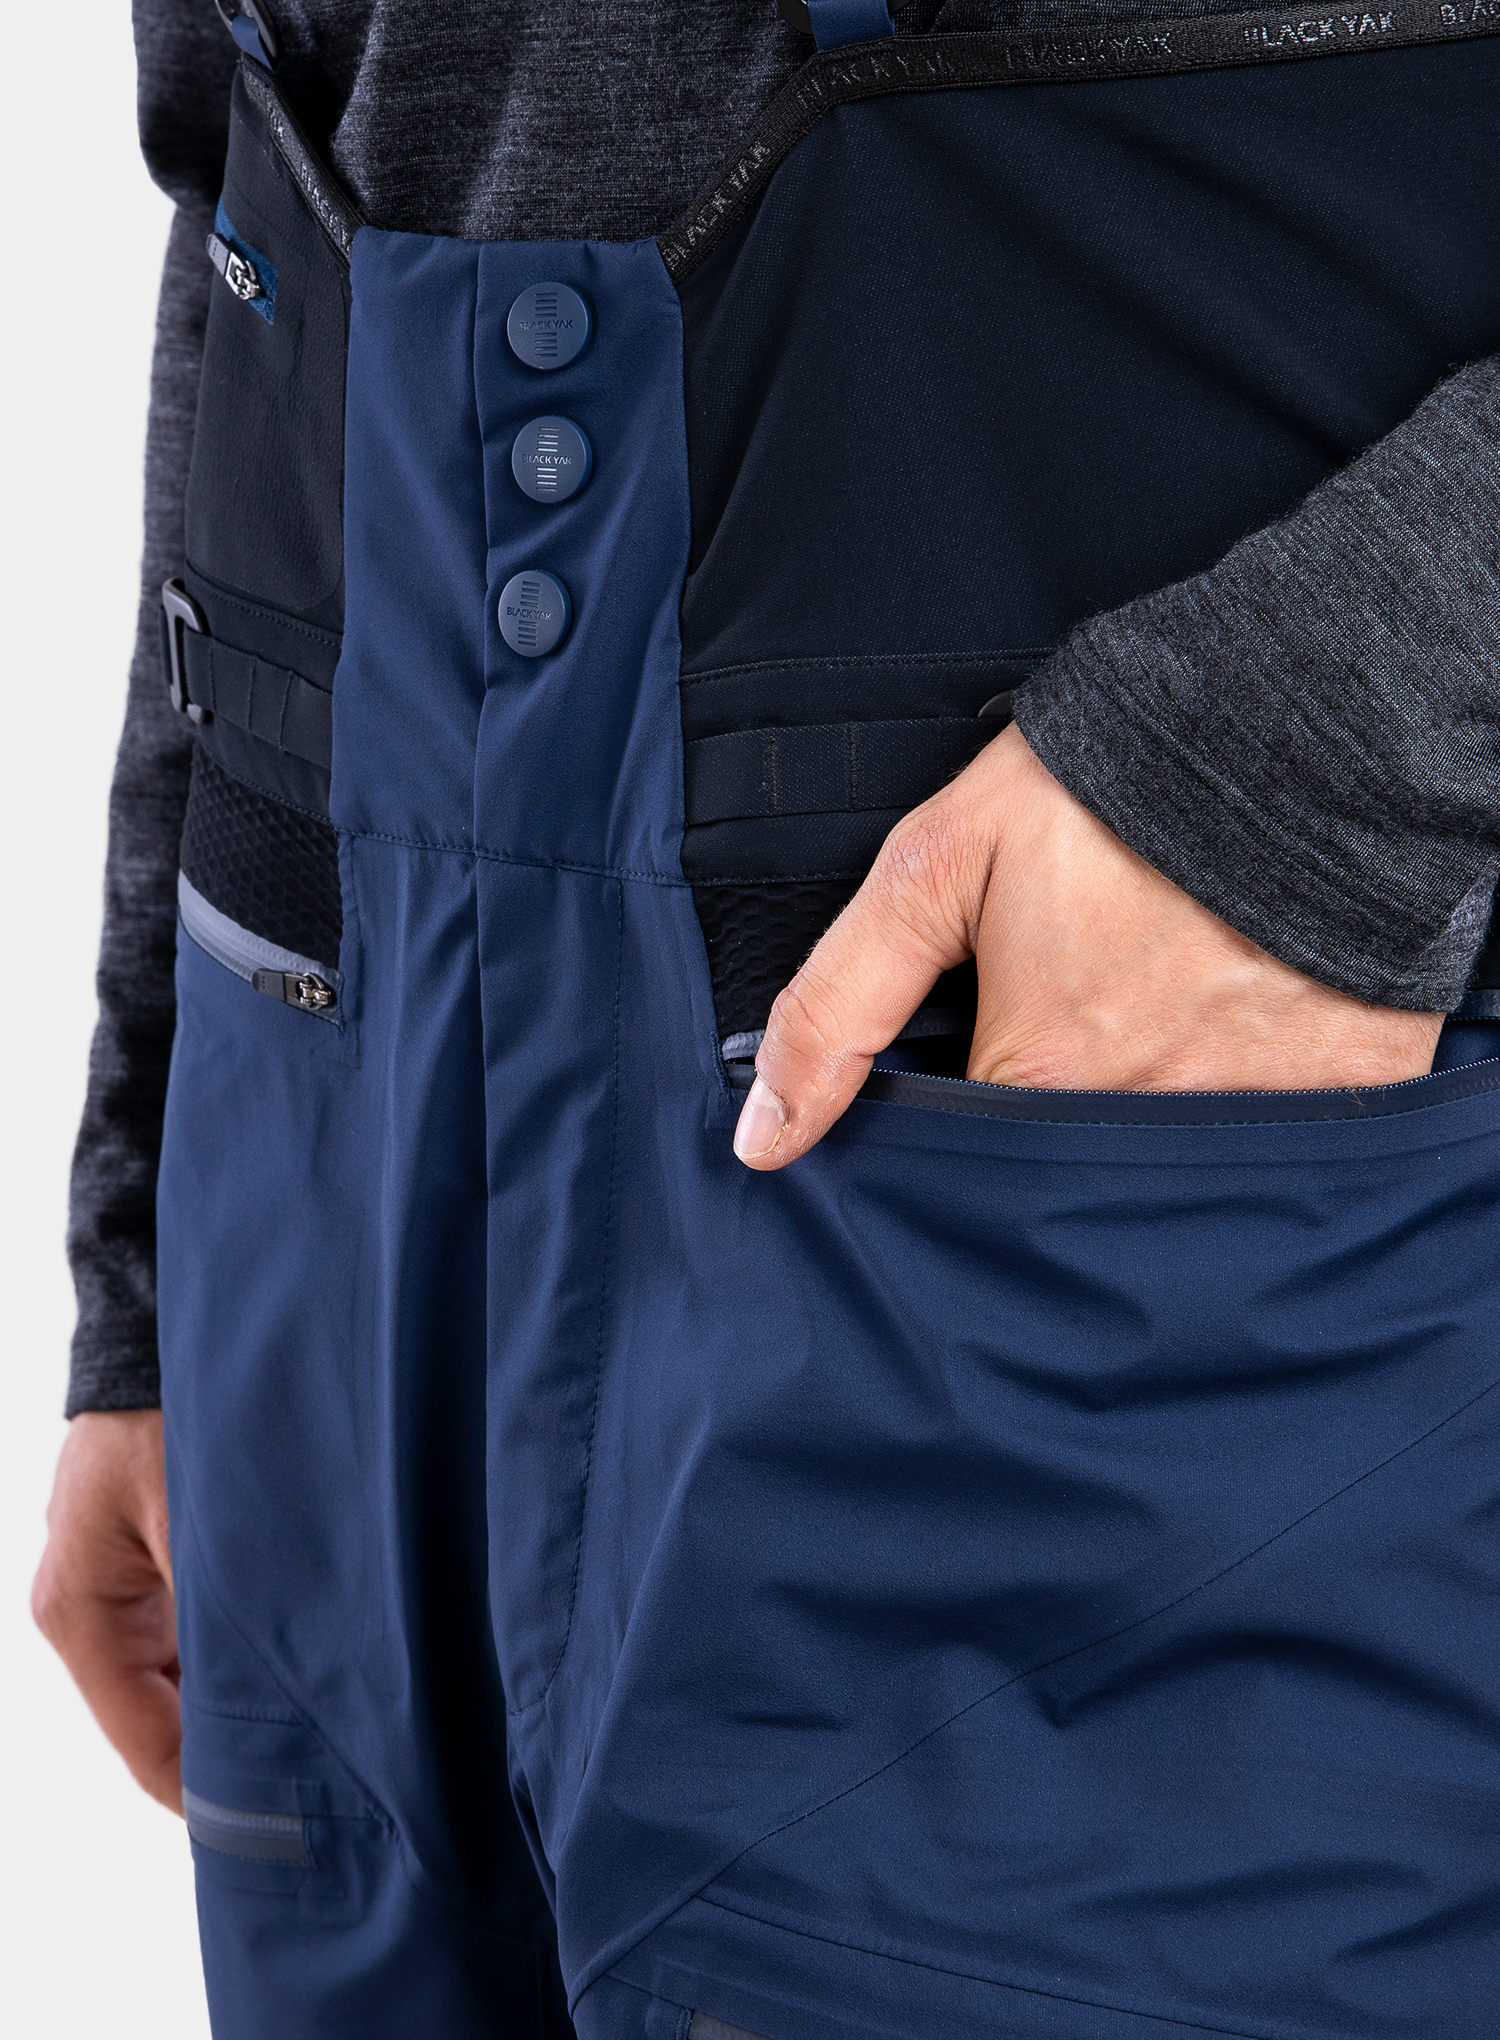 Spodnie GORE-TEX BlackYak Brangus Pants - dress blues - zdjęcie nr. 7